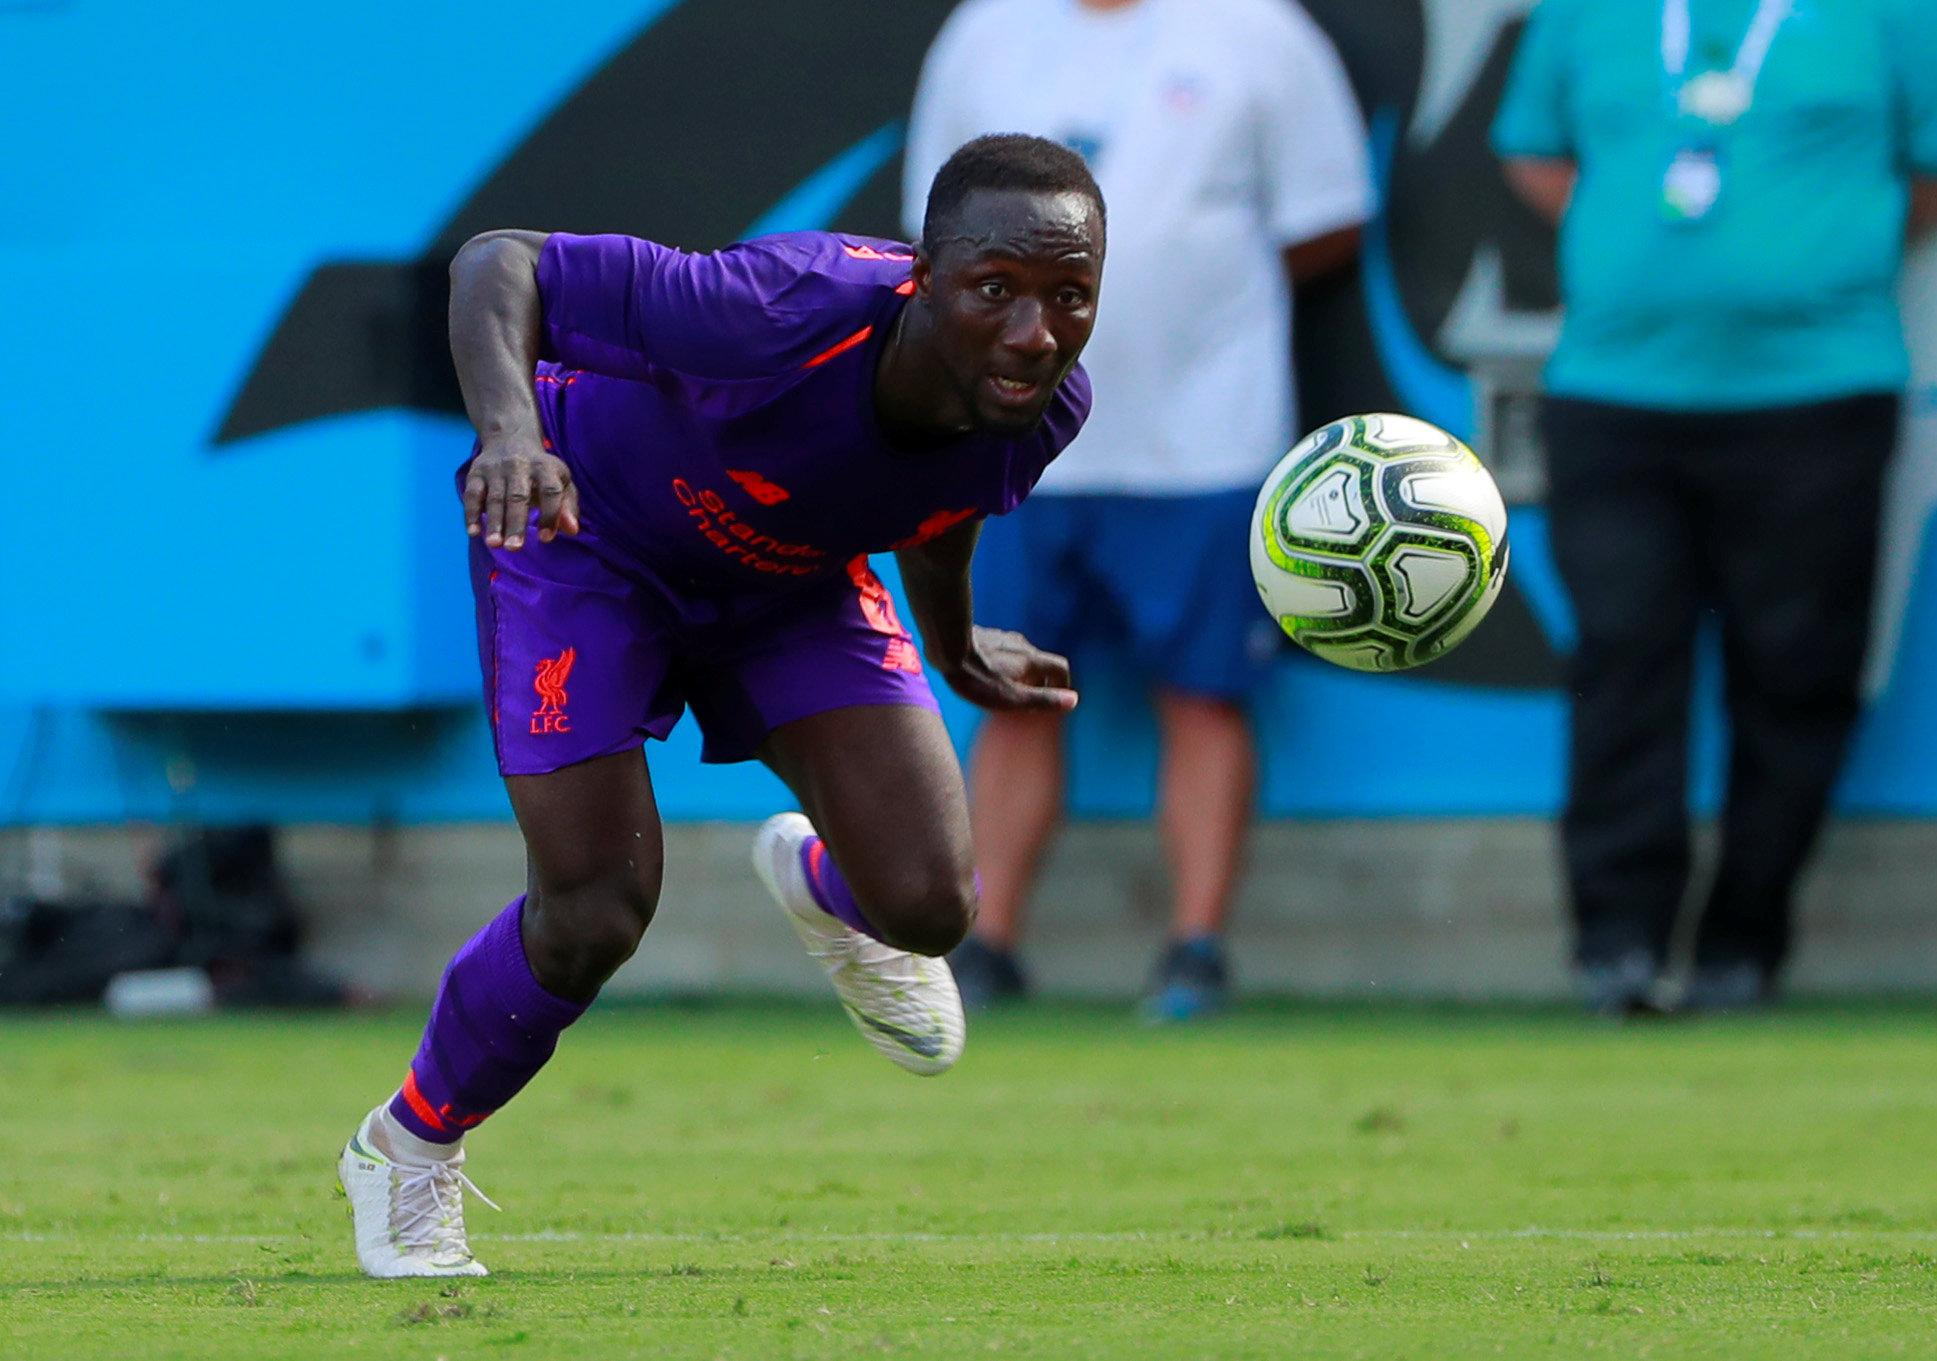 Keita could take Liverpool to the next level